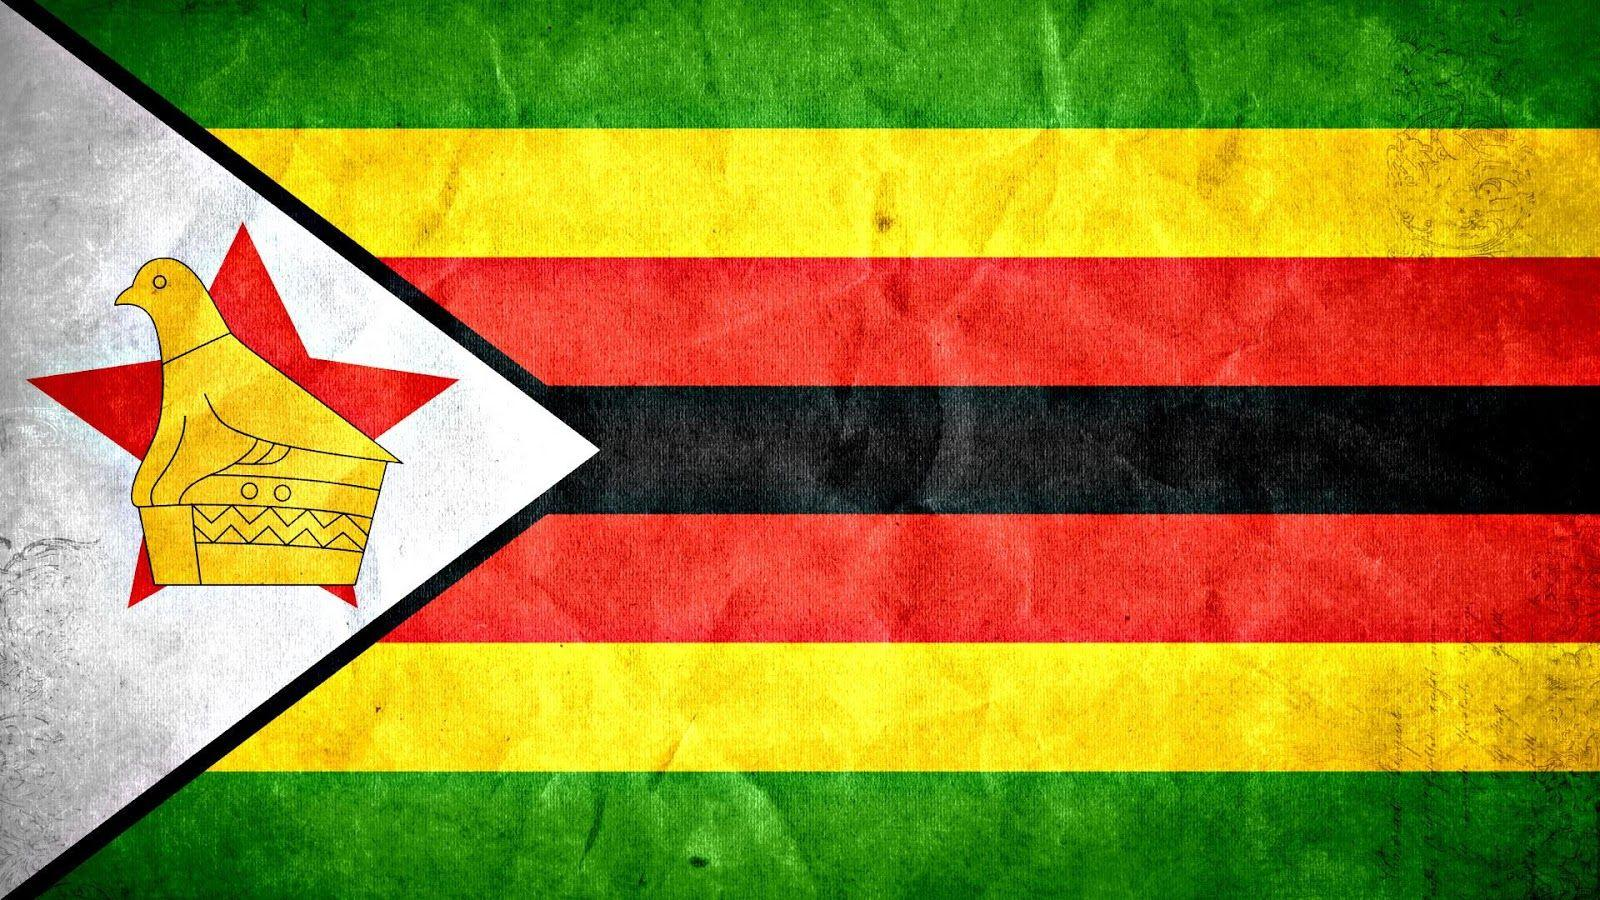 Zimbabwe Flag Wallpapers - Android Apps on Google Play